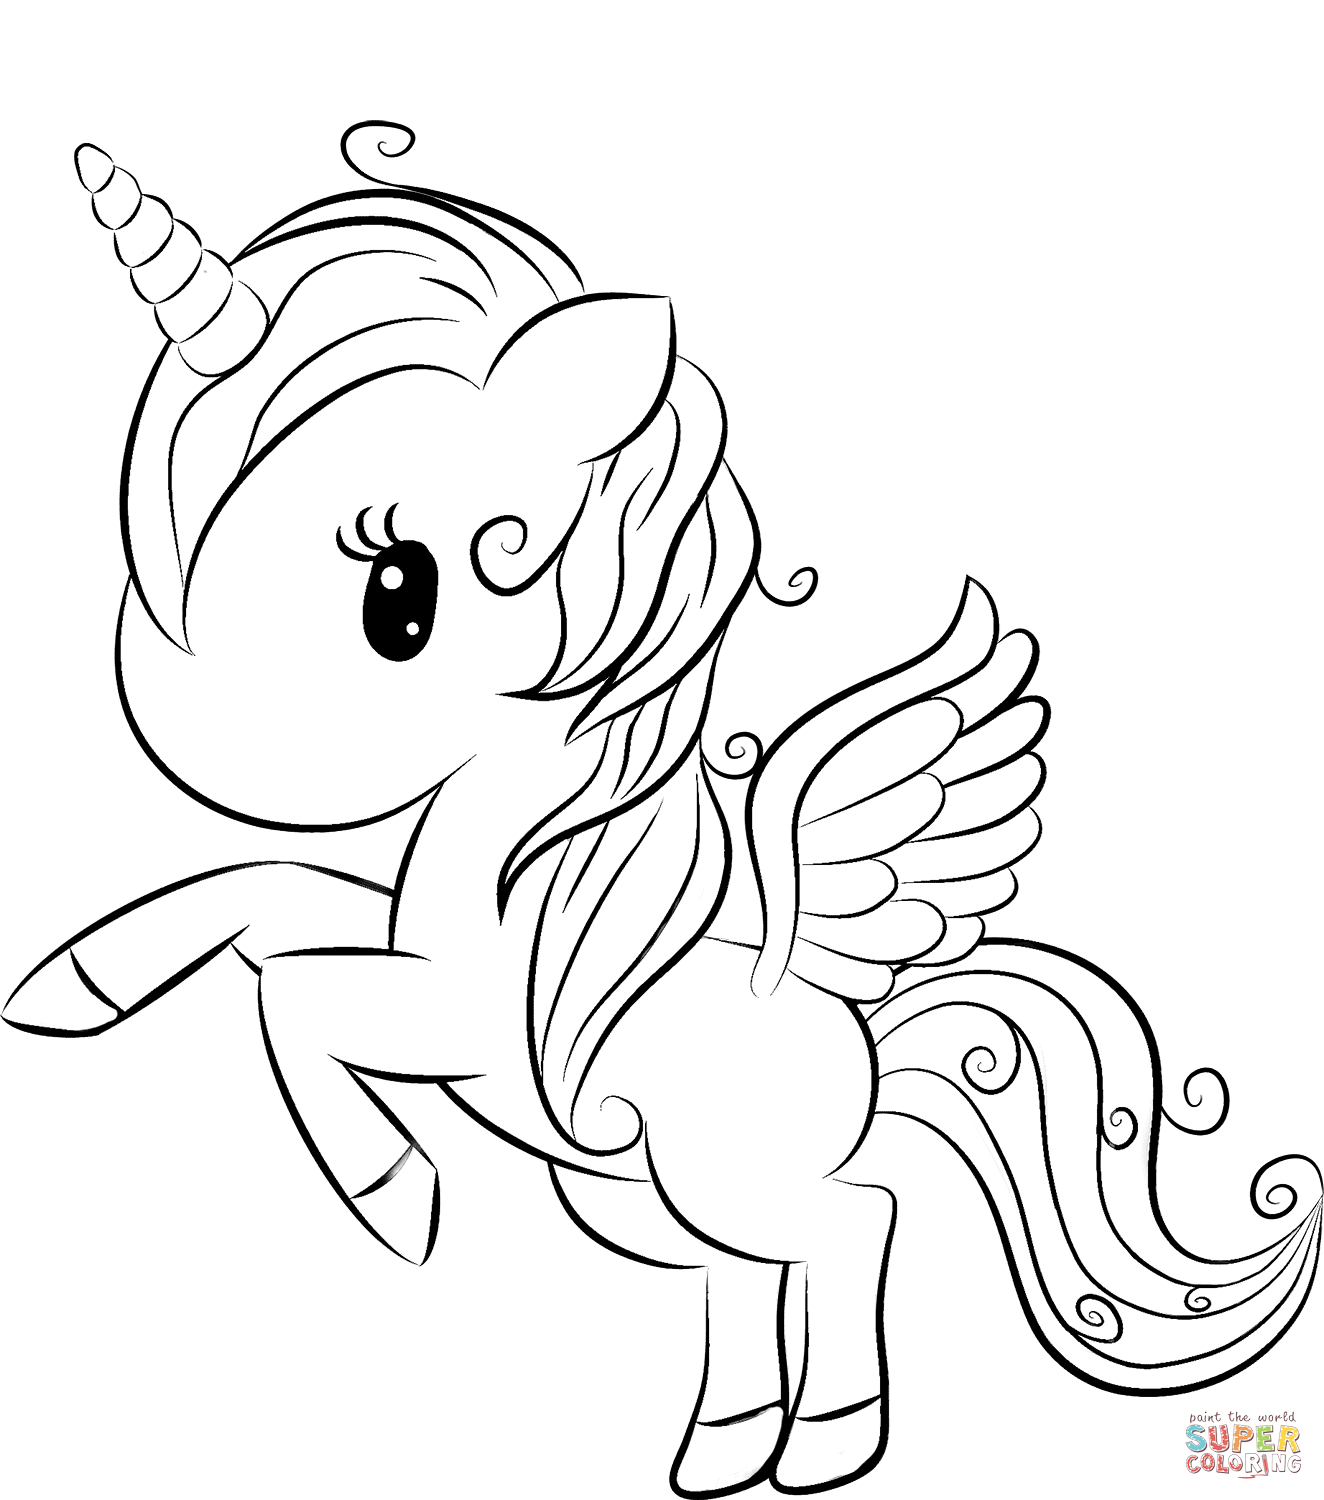 Cute Unicorn Coloring Pages Free